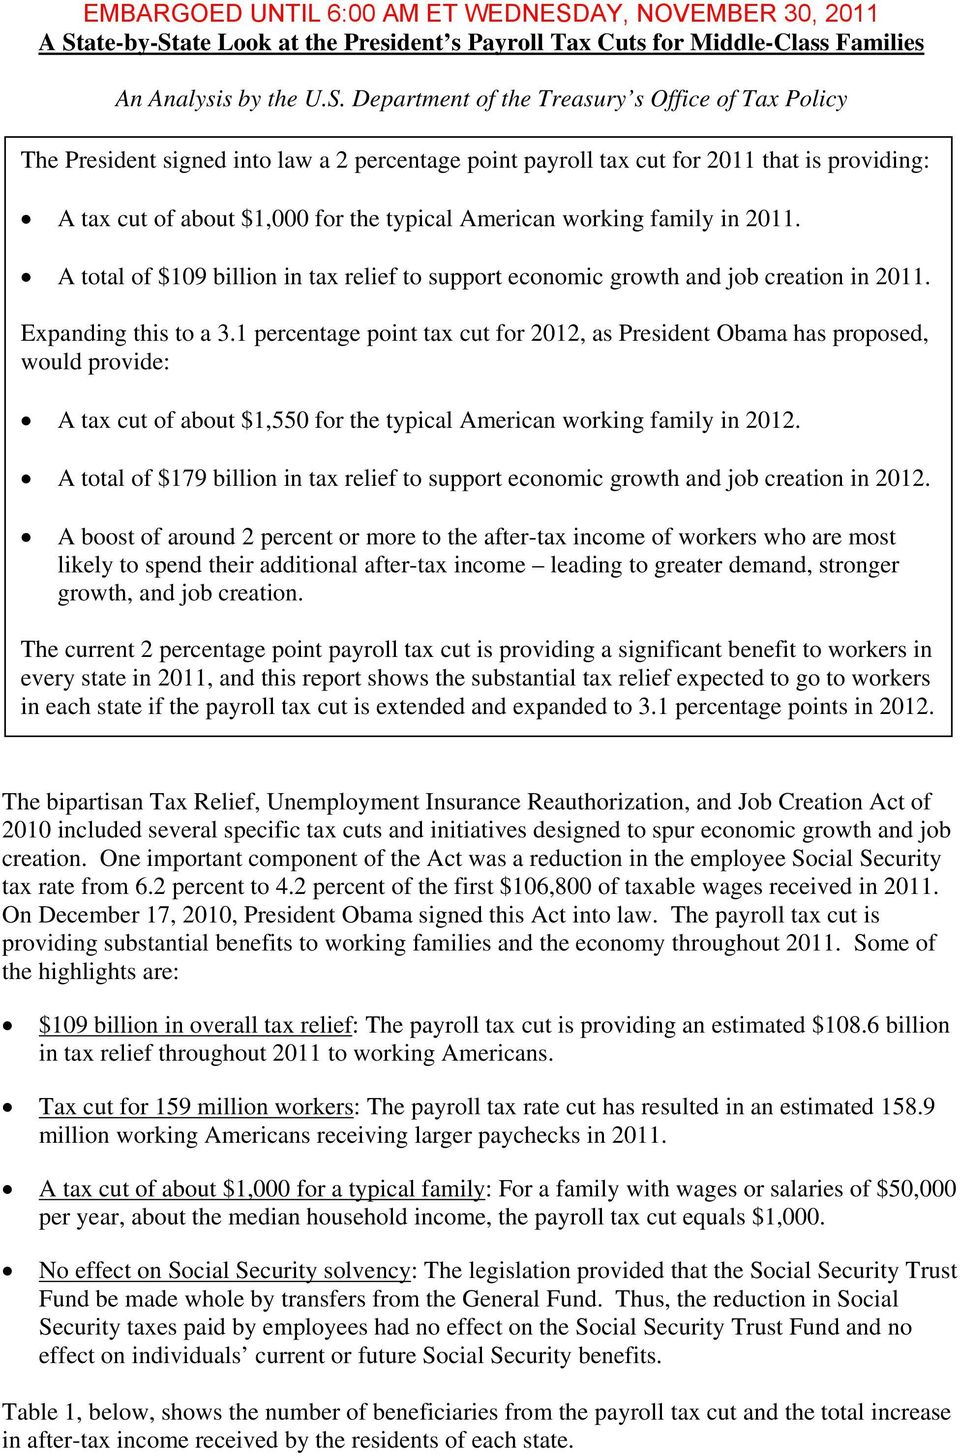 A total of $109 billion in tax relief to support economic growth and job creation in 2011. Expanding this to a 3.